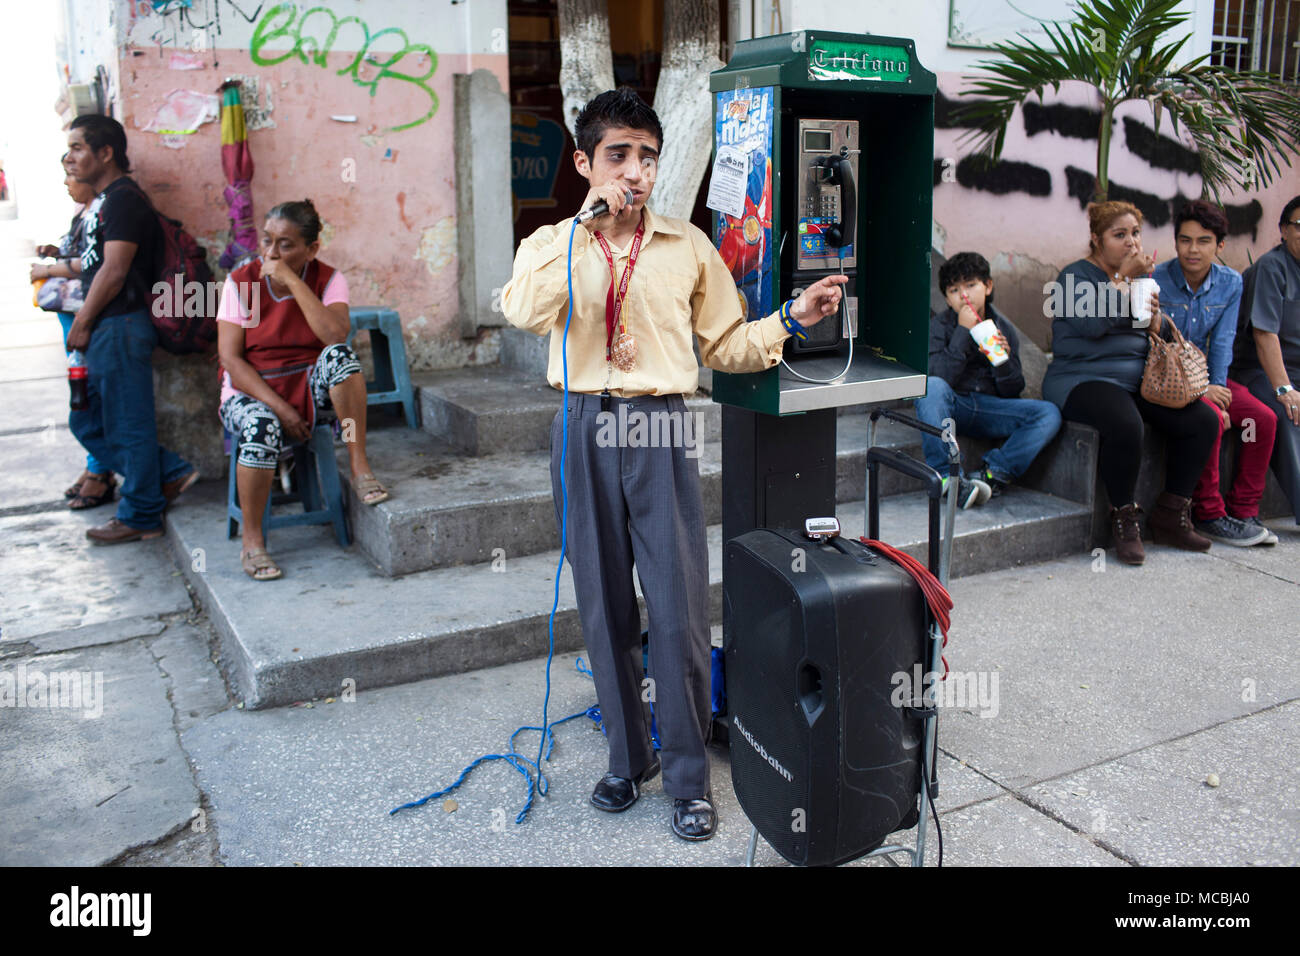 A street performer in Chilpancingo, Guerrero, Mexico on Saturday, July 25, 2015. The State of Guerrero has experienced a lot of violence, including the disappearance of 43 students last fall. - Stock Image